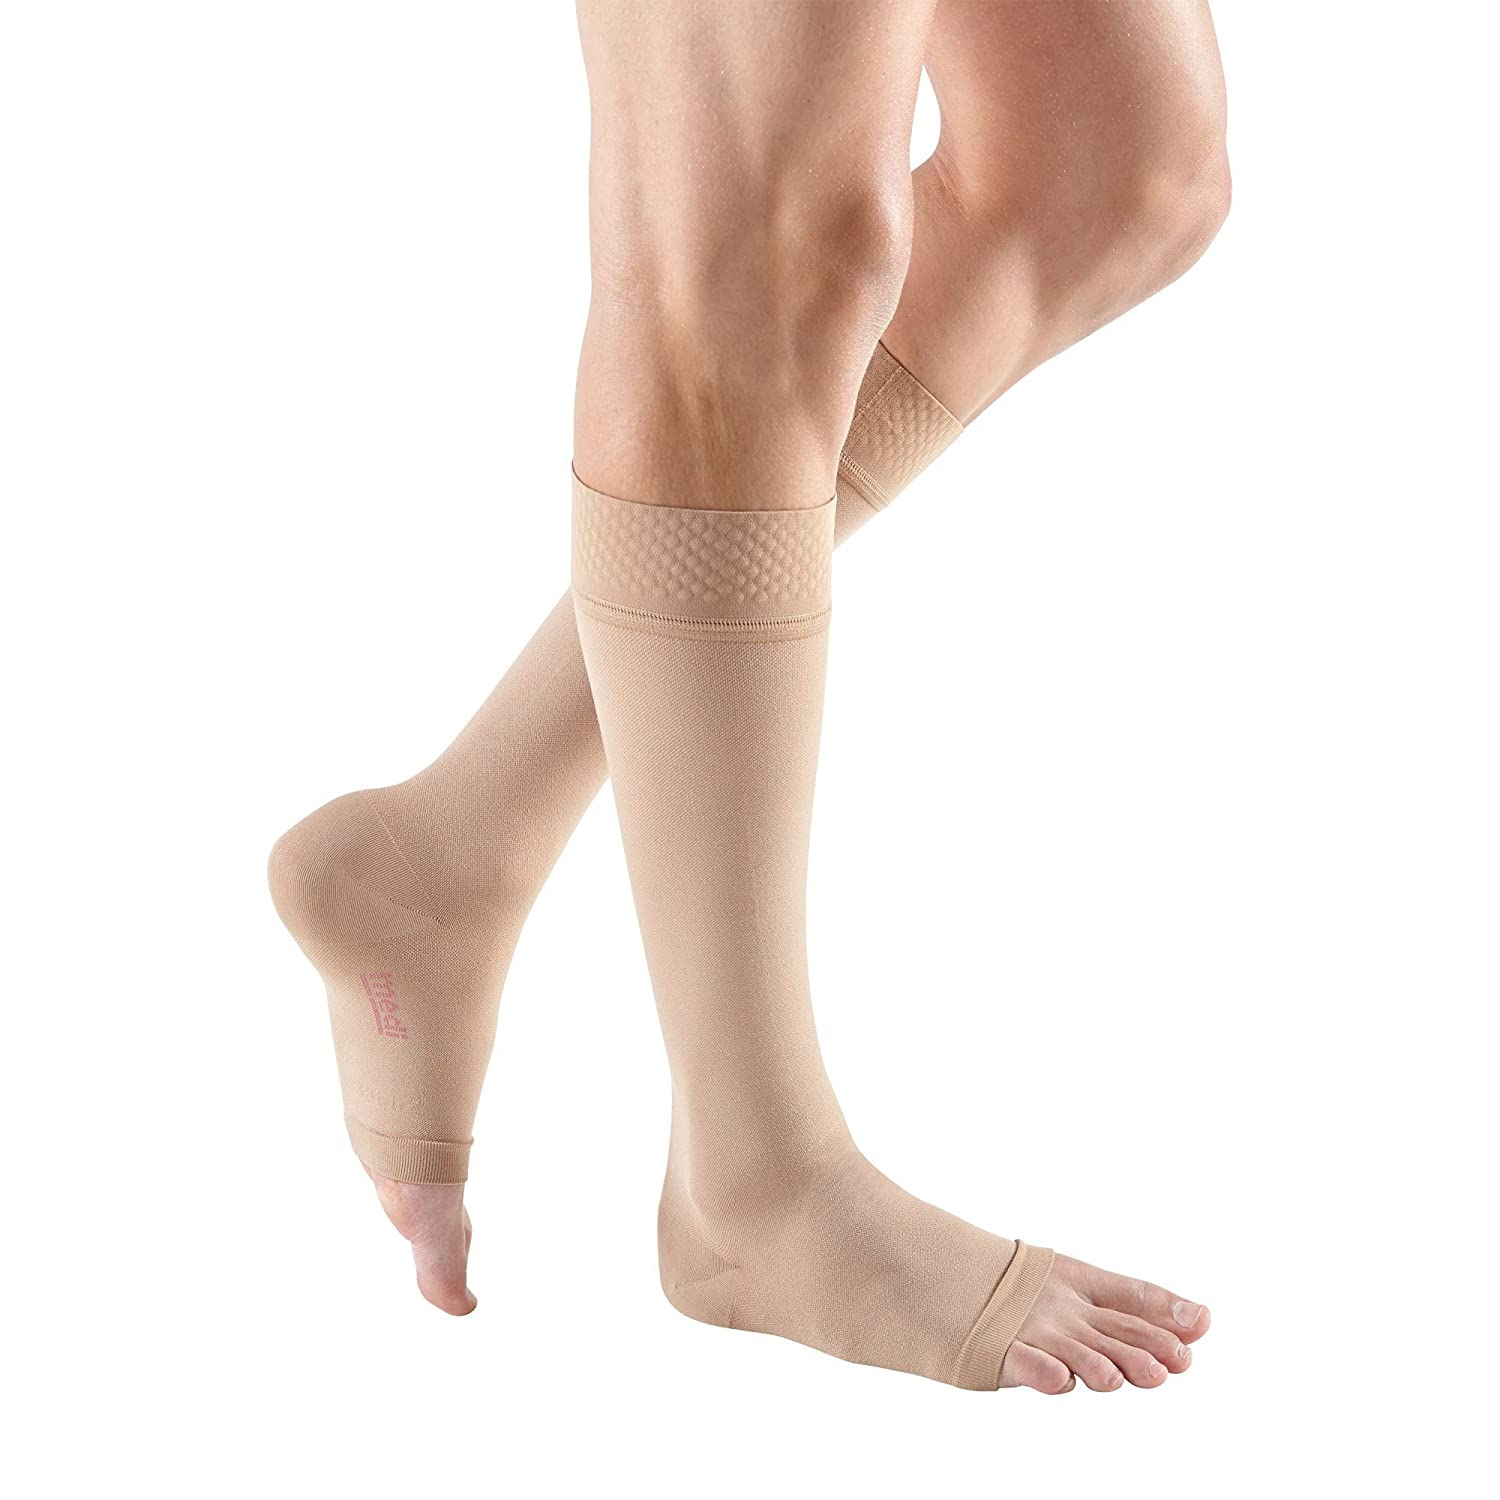 Mediven Forte Knee-High Stockings, Extra Wide, Open Toe, Silicone Top Band, 40-50mmHg, VII, Beige, MDV37607 by Mediven B001ANZJ16